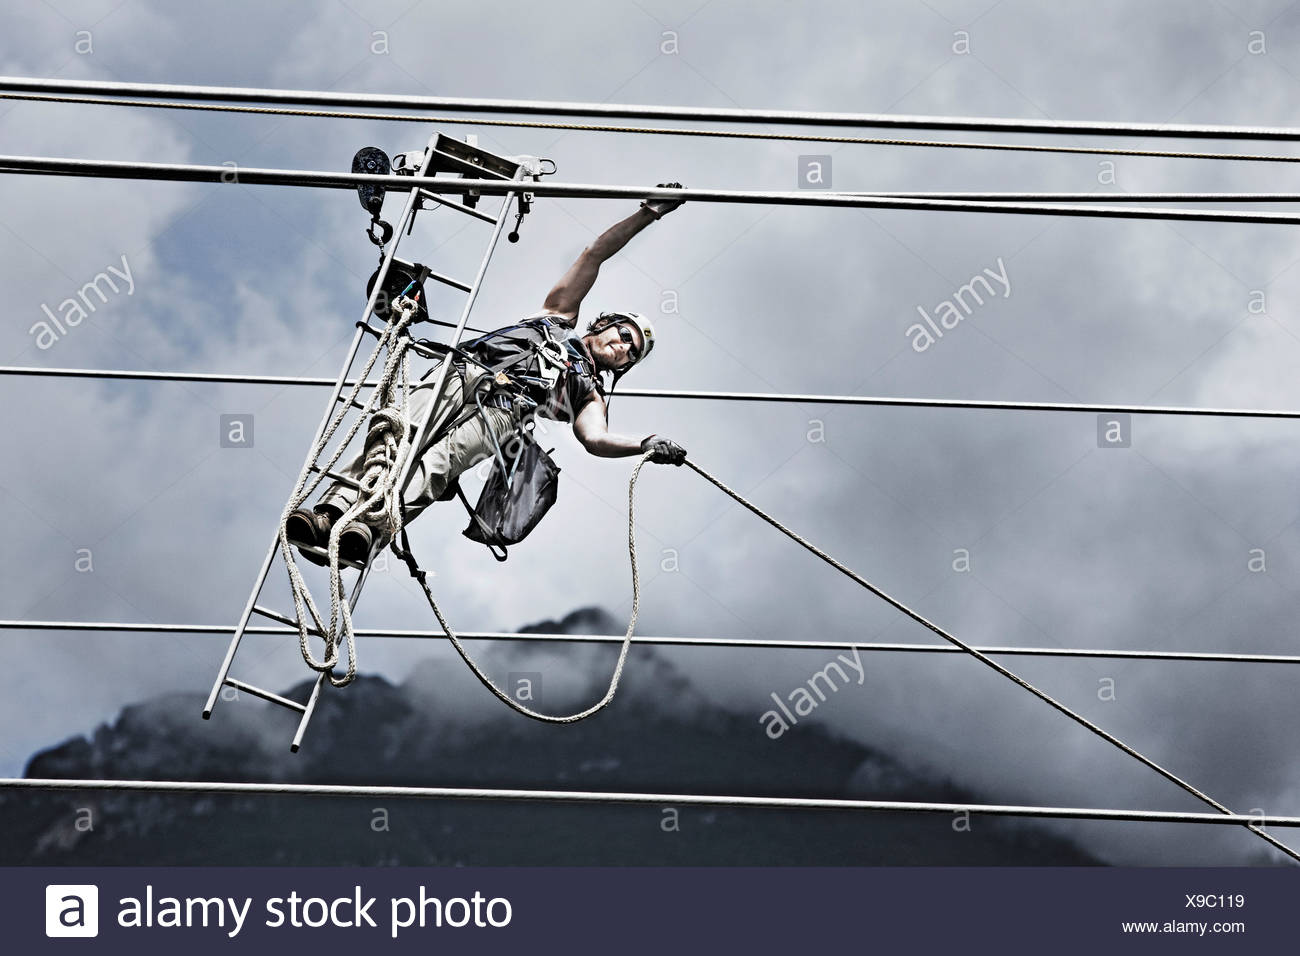 High-voltage service technician pulling a rope to get to the next pylon - Stock Image